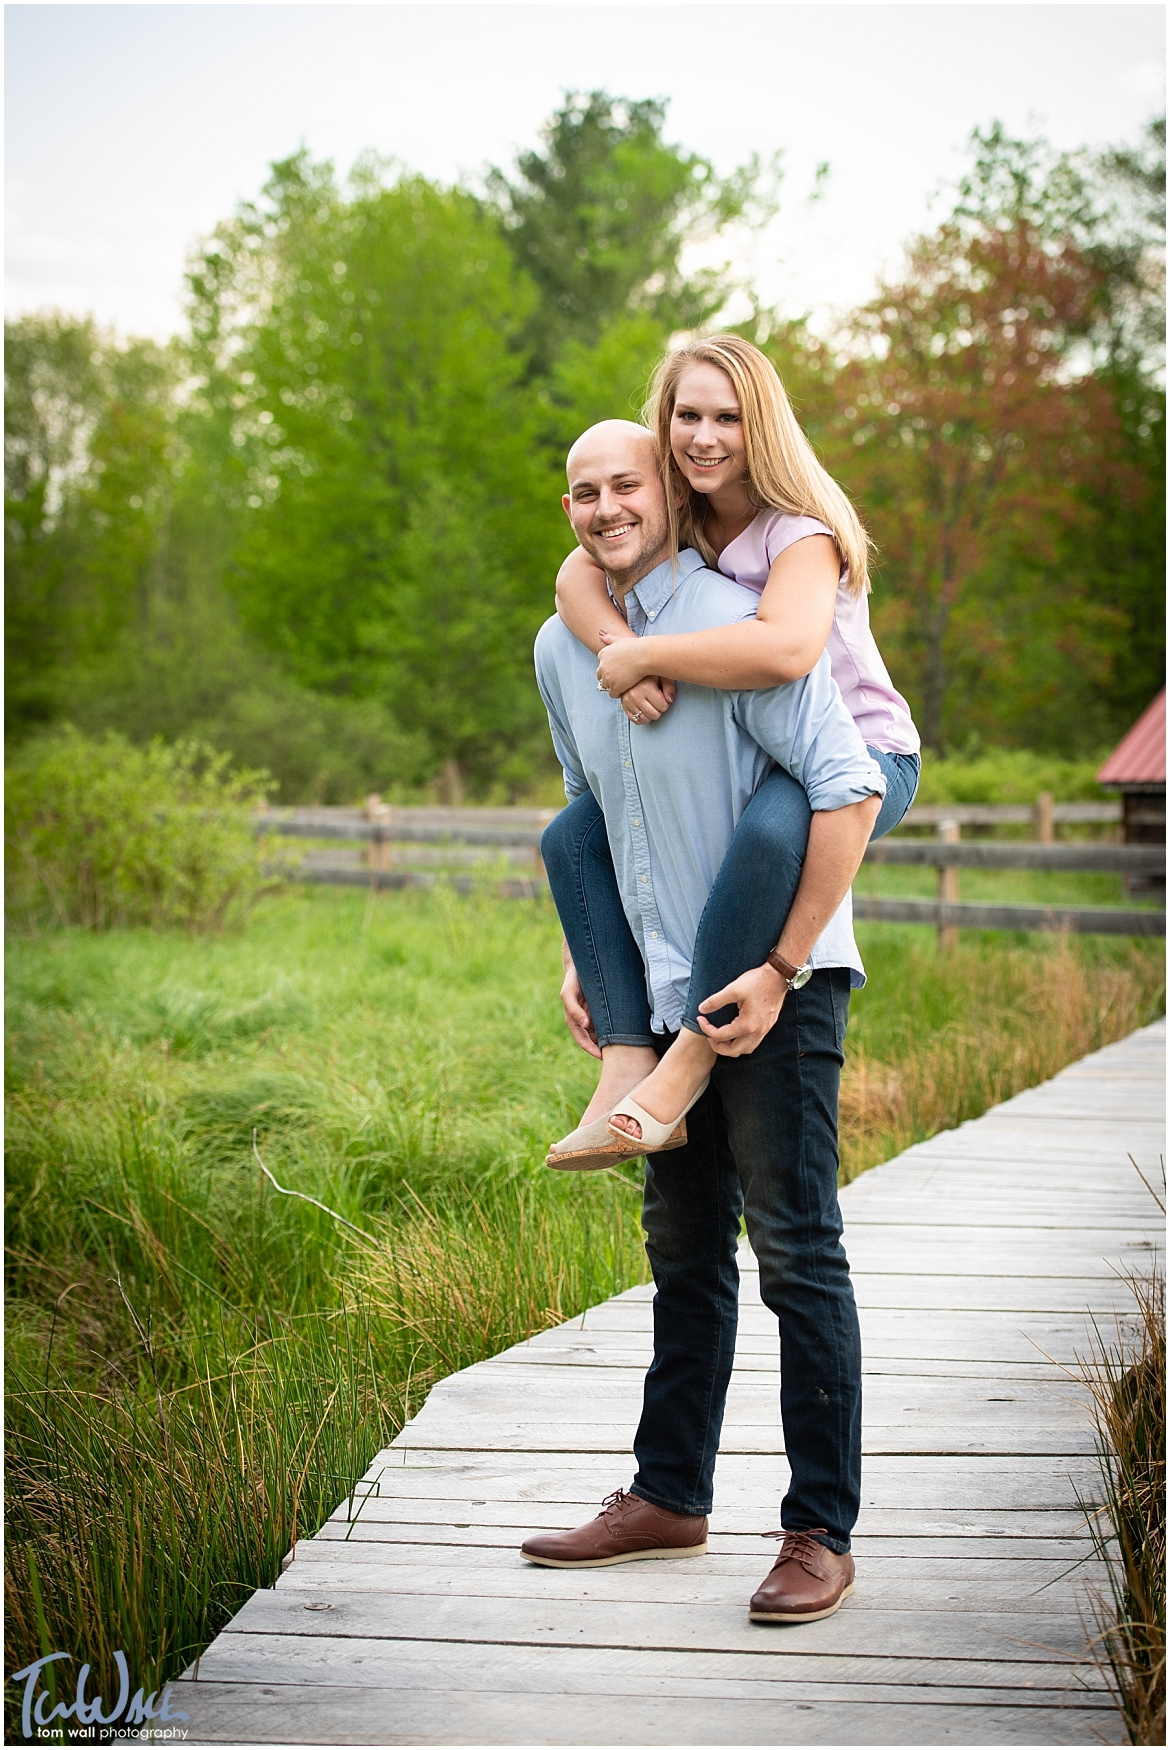 -- Ashley & Mike's engagement session